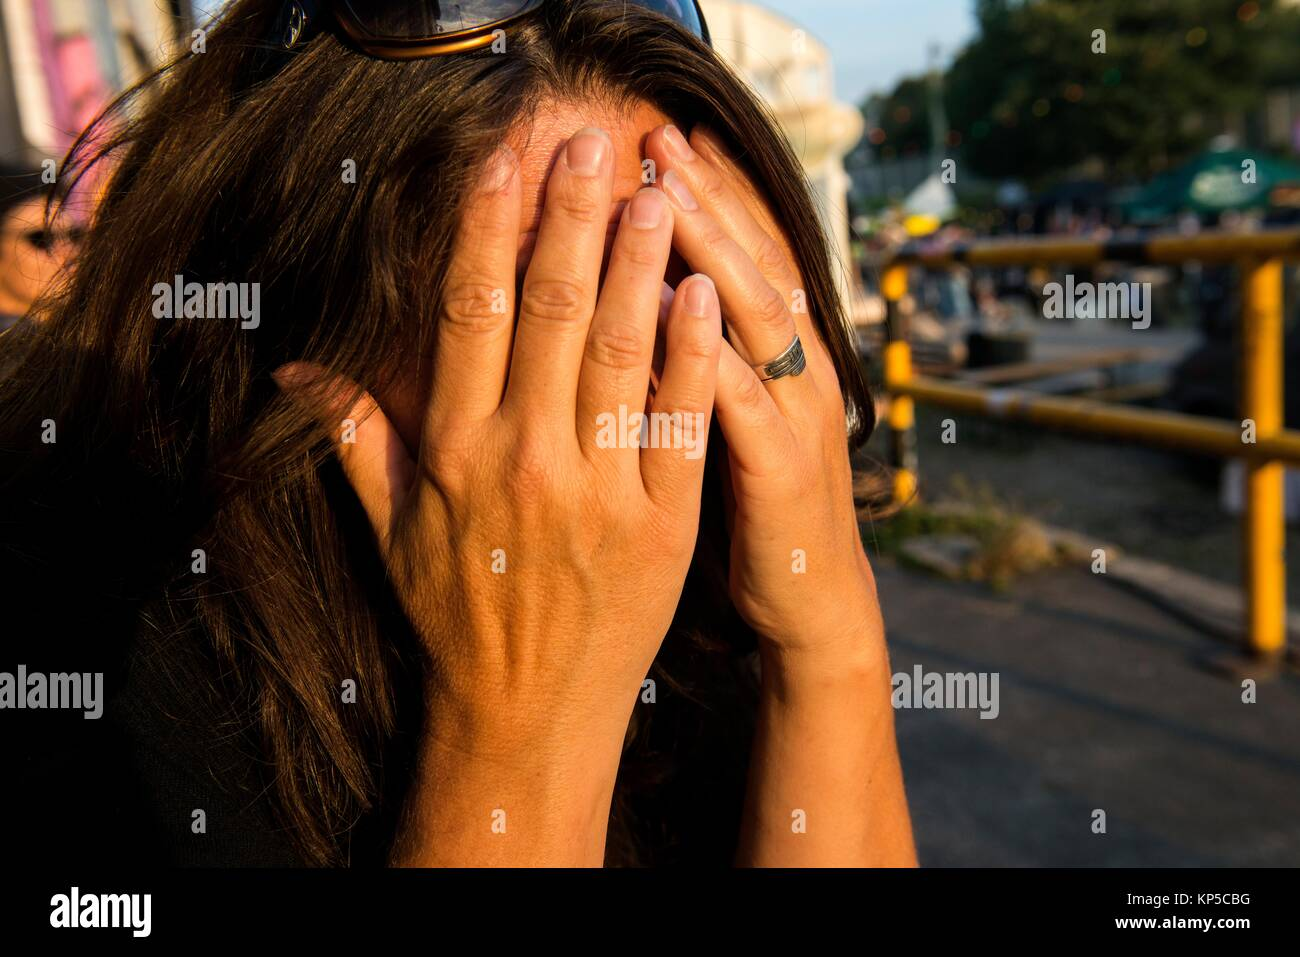 Tilburg, Netherlands. Streetportrait brunette woman covering her face with both hands, being shy. - Stock Image